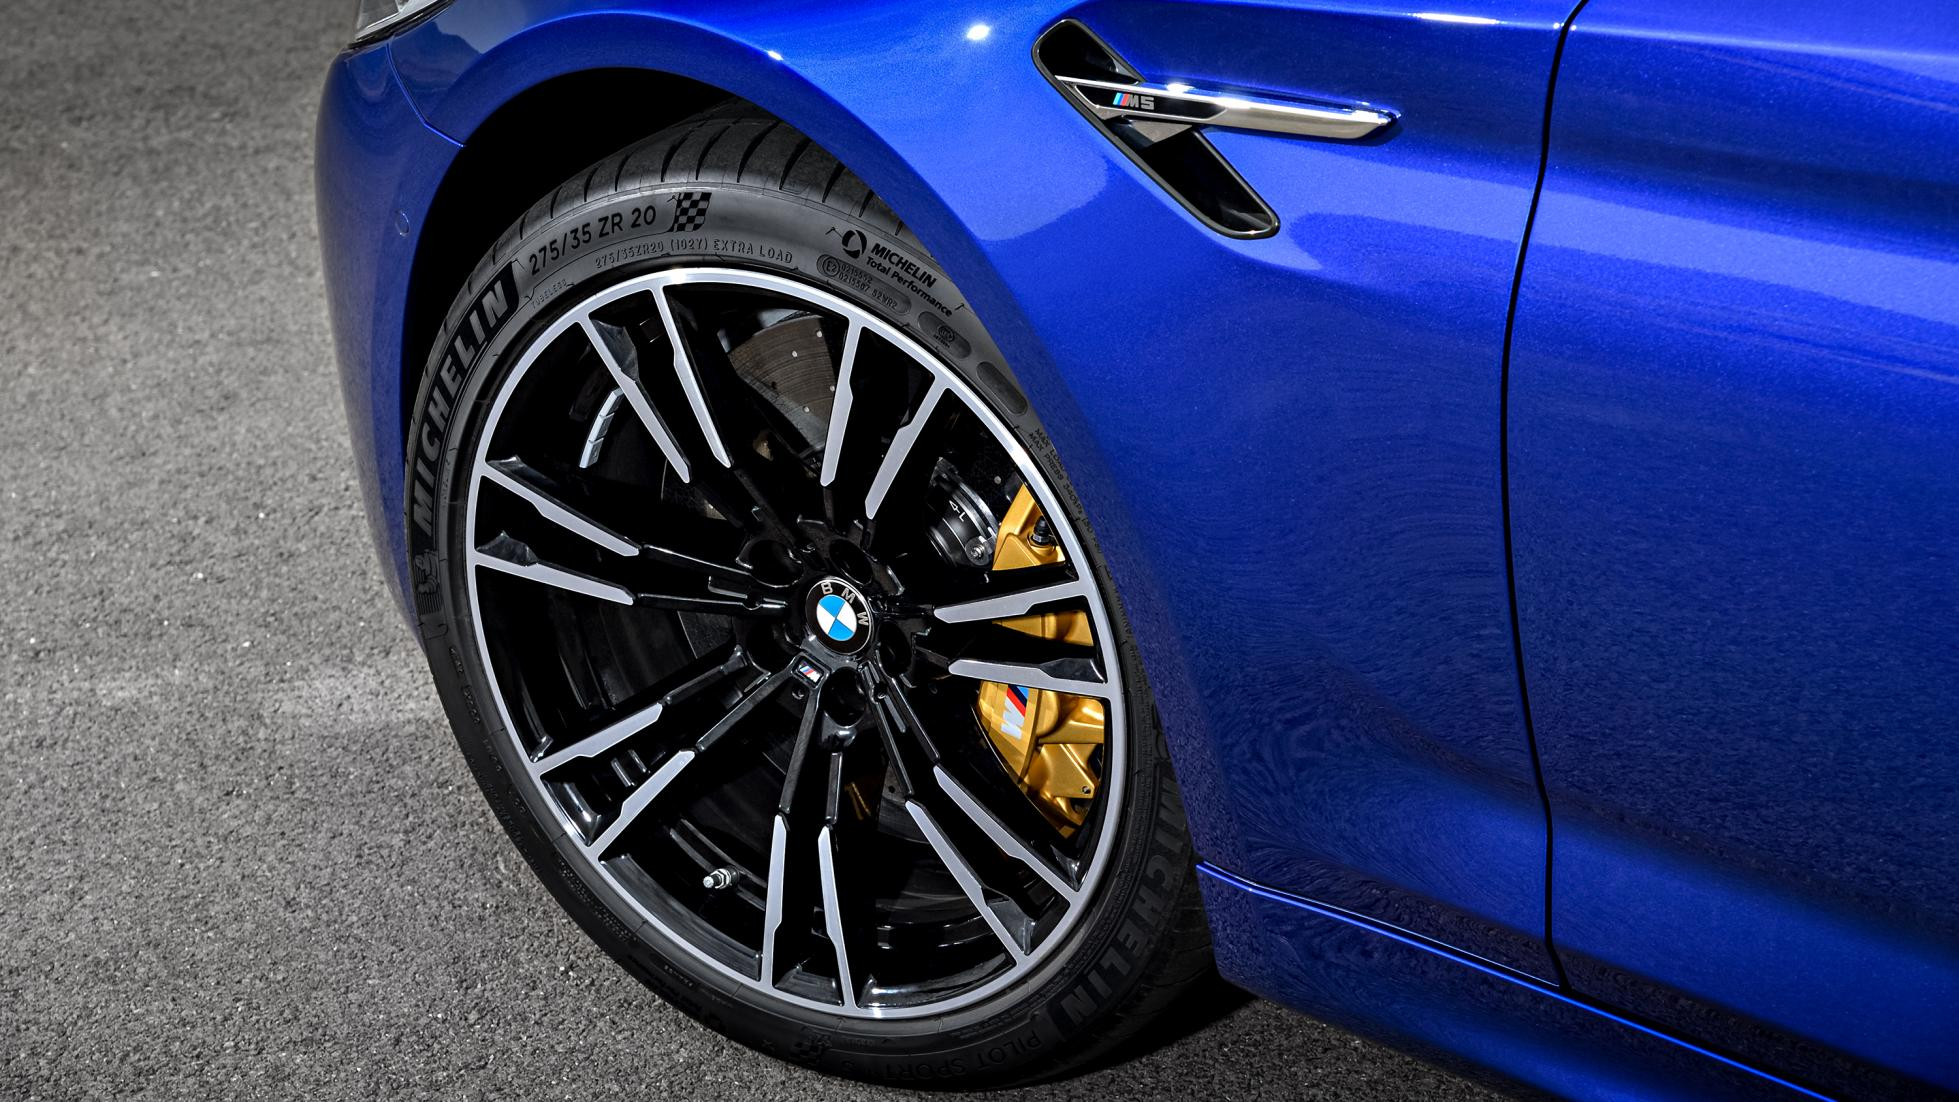 p90273019_highres_the-new-bmw-m5-08-20